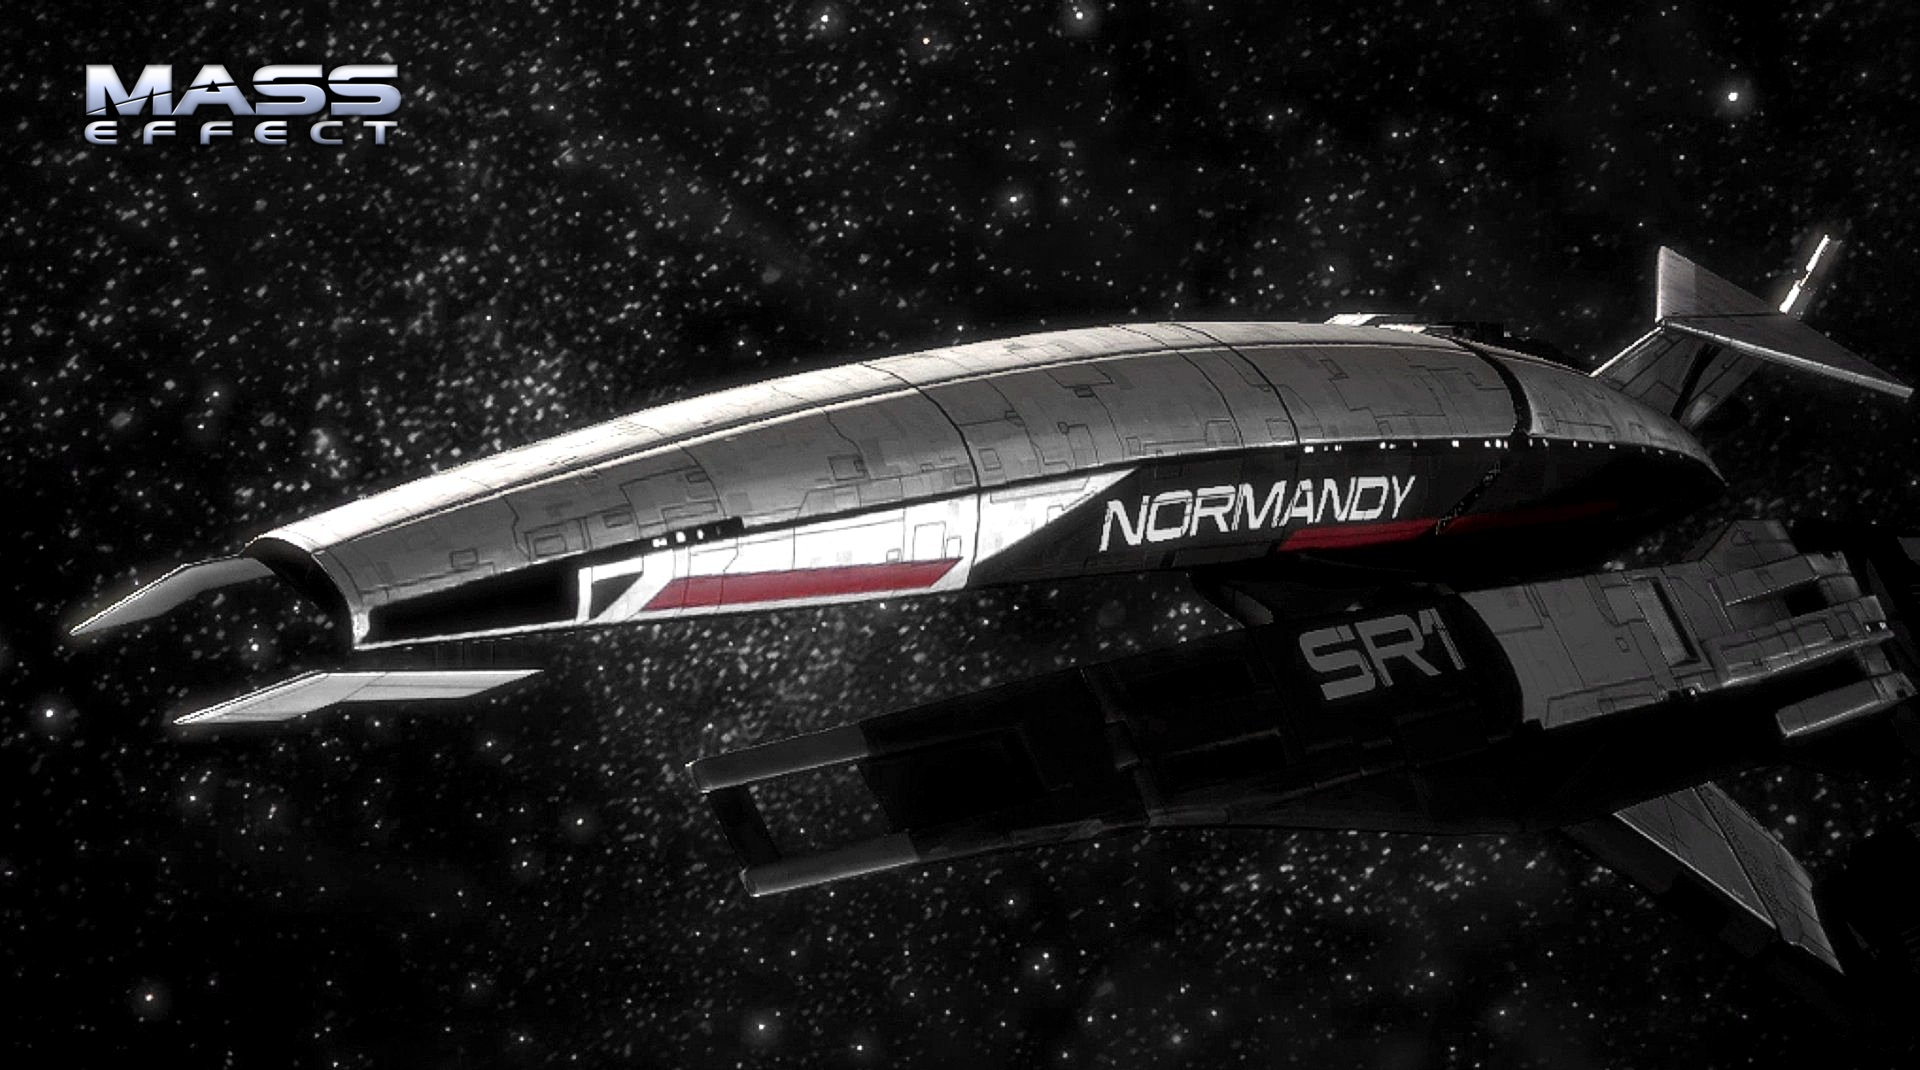 Mass Effect 1 Normandy SR1 Wallpaper